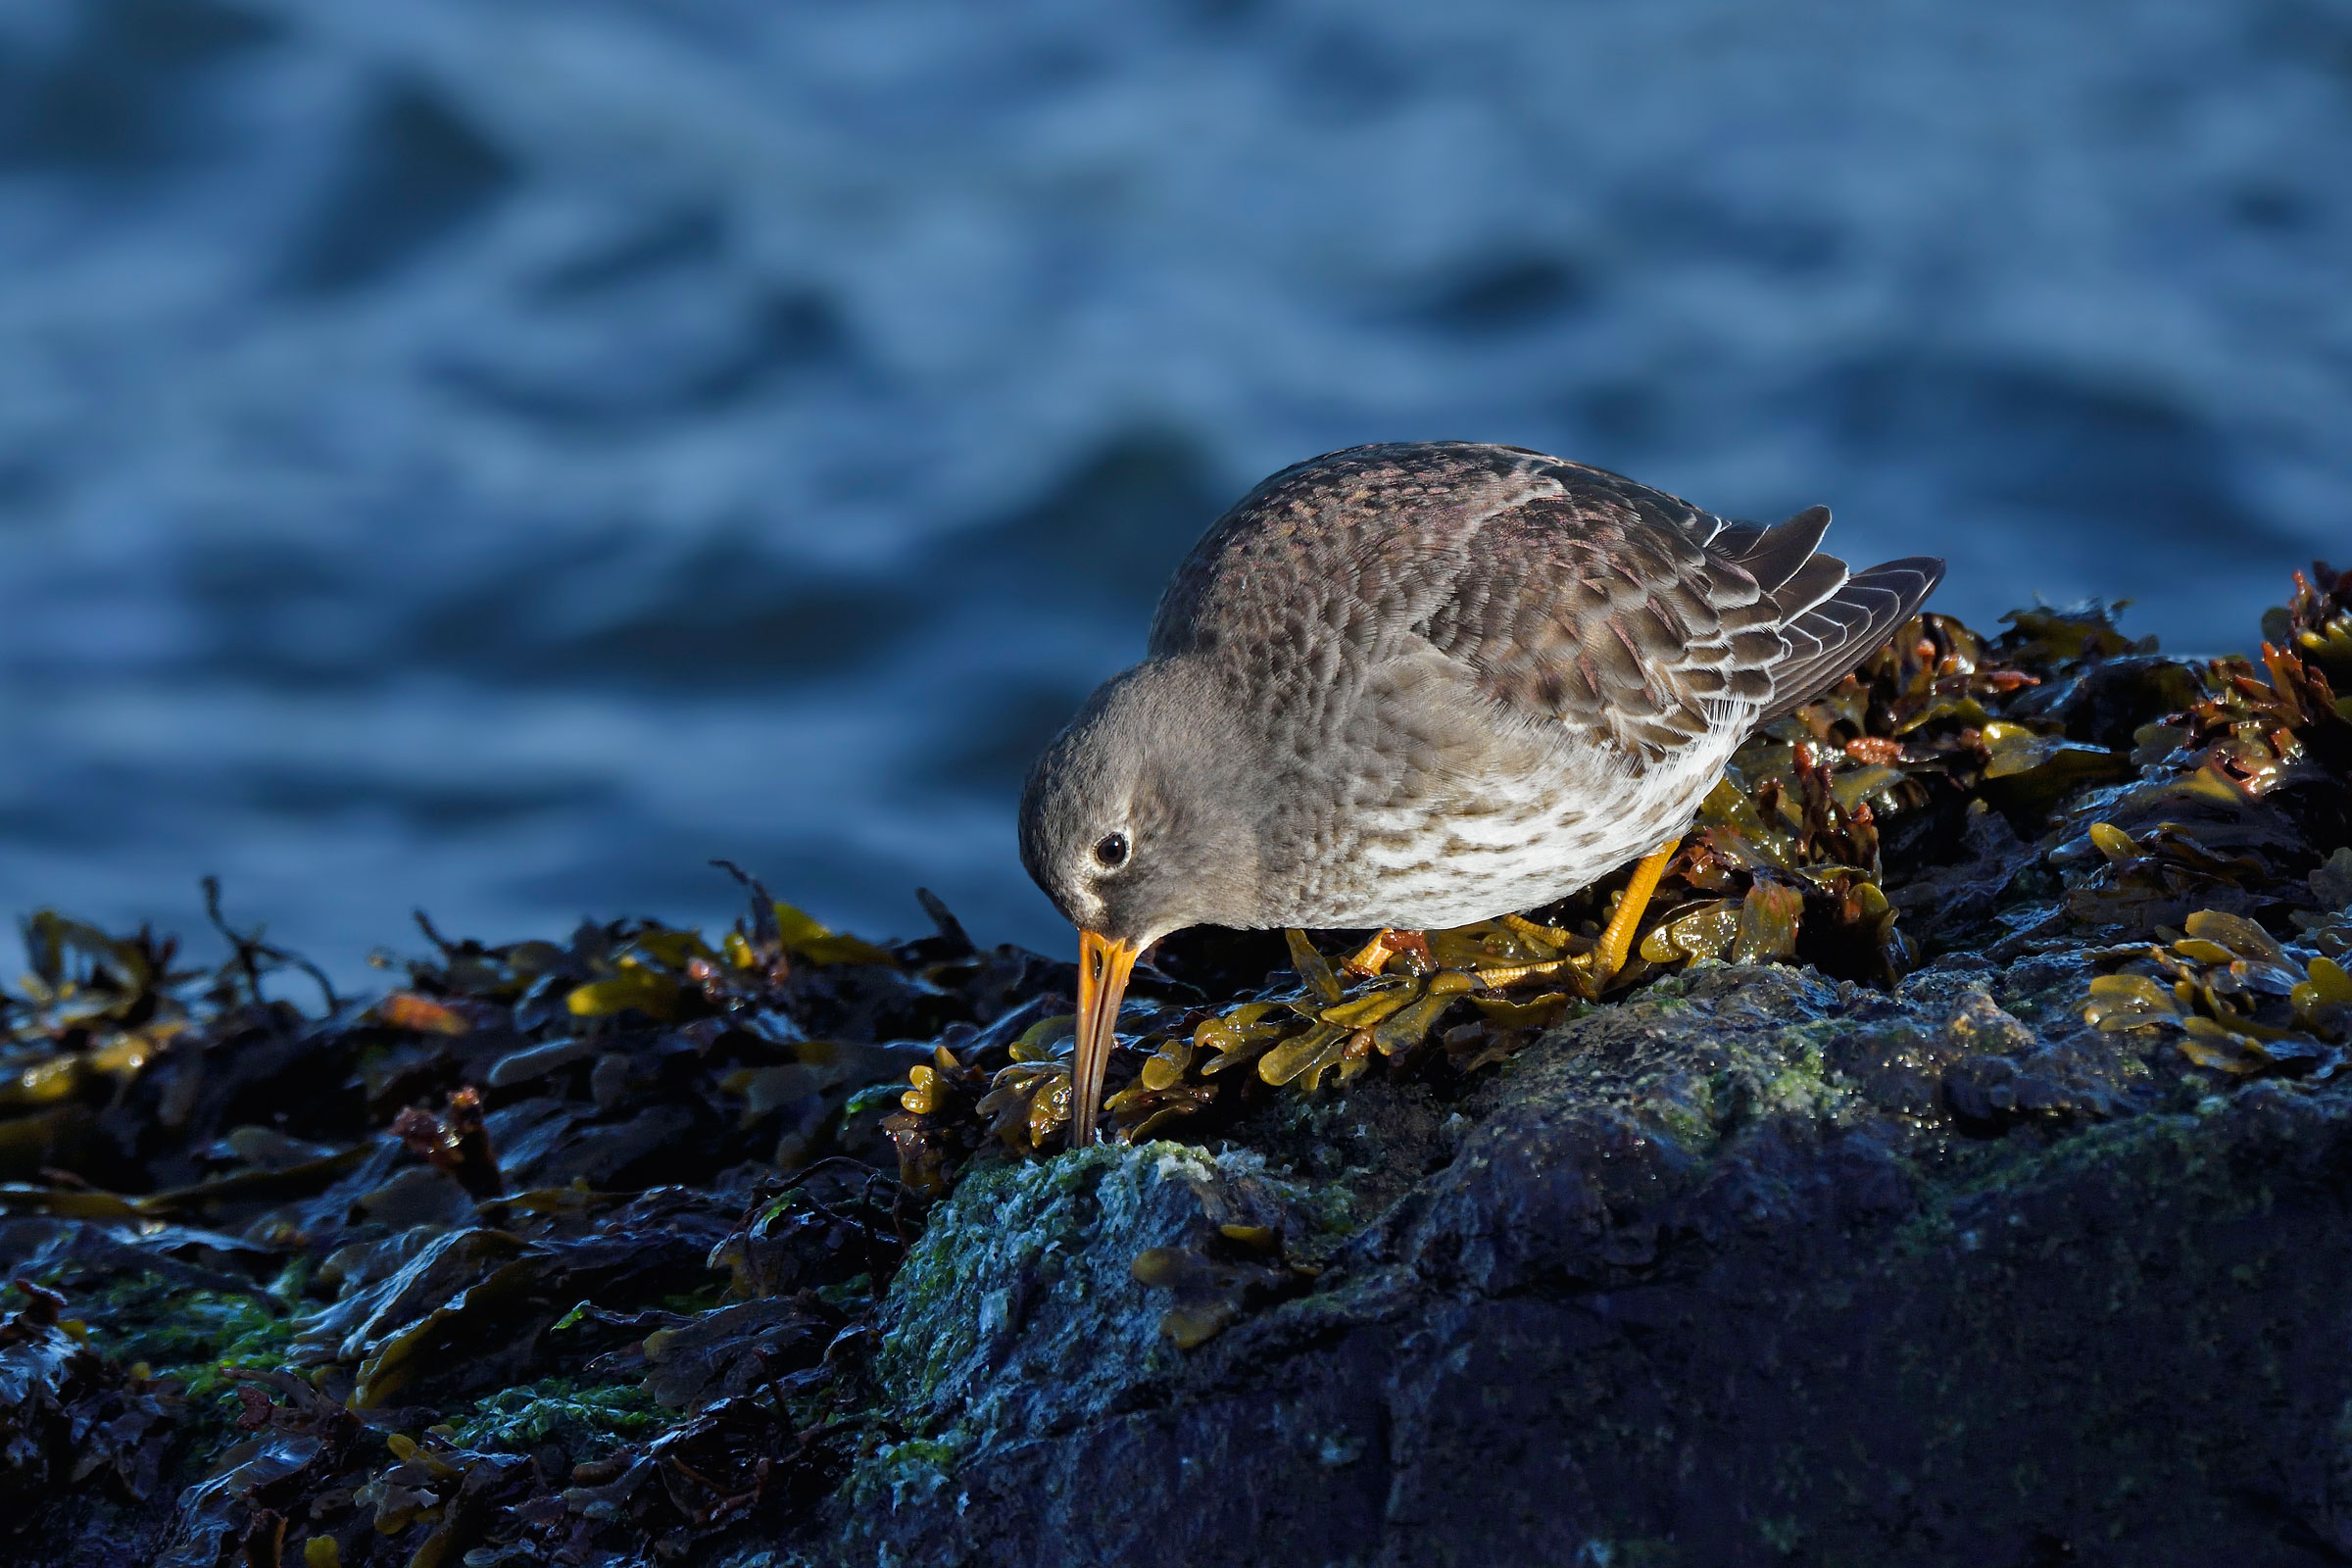 Purple Sandpipers are a prized species on the East Coast. They mostly migrate late in fall, showing up on rocky shorelines in November and staying through the winter. Bill Dix/Audubon Photography Awards